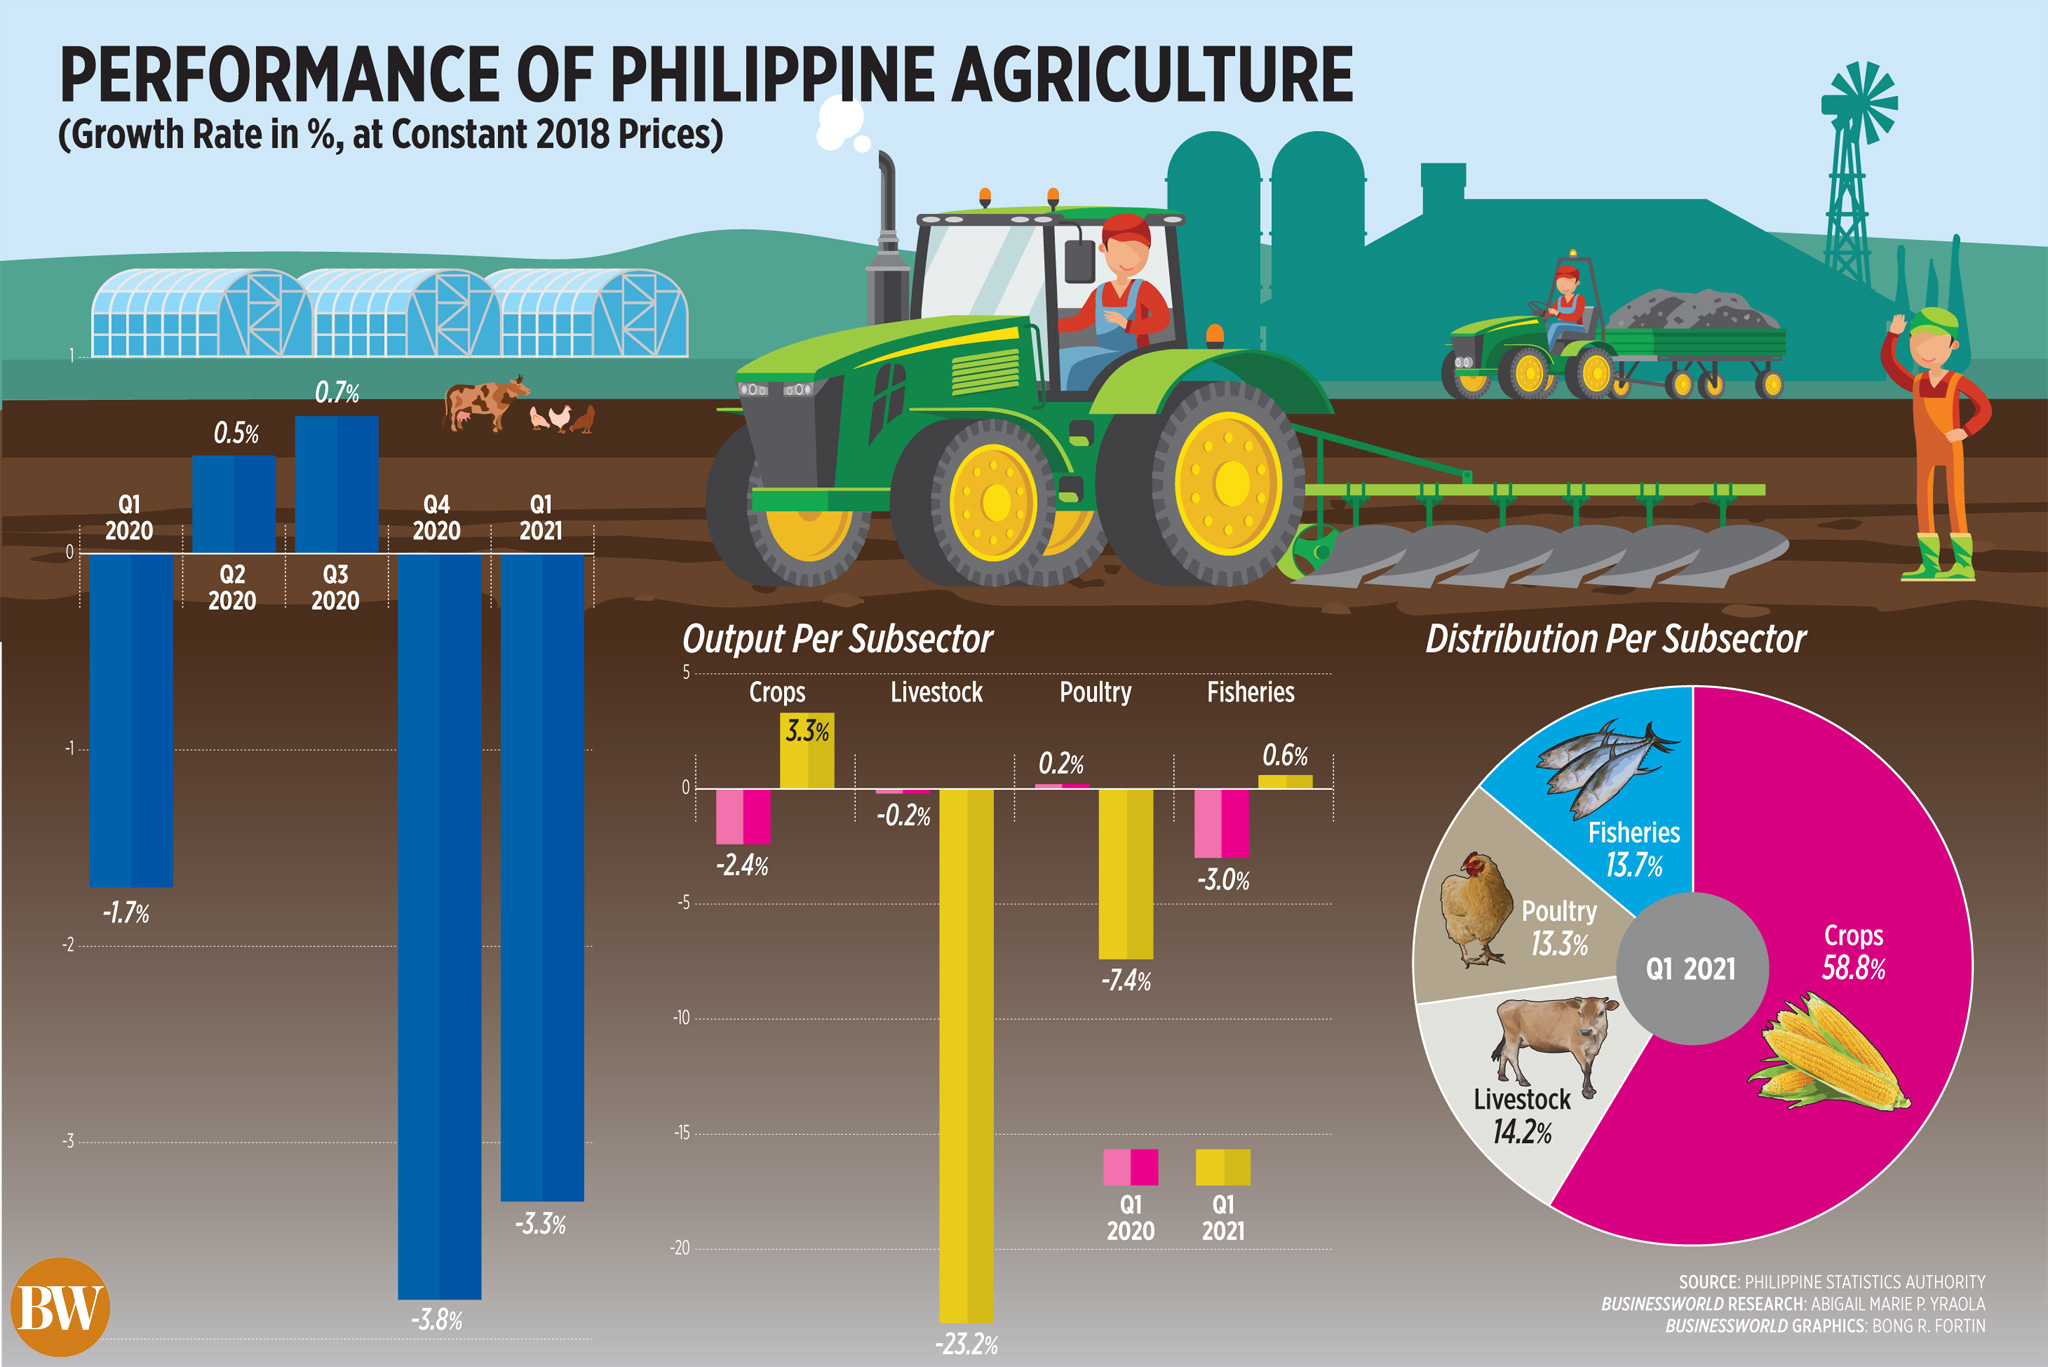 Performance of Philippine Agriculture